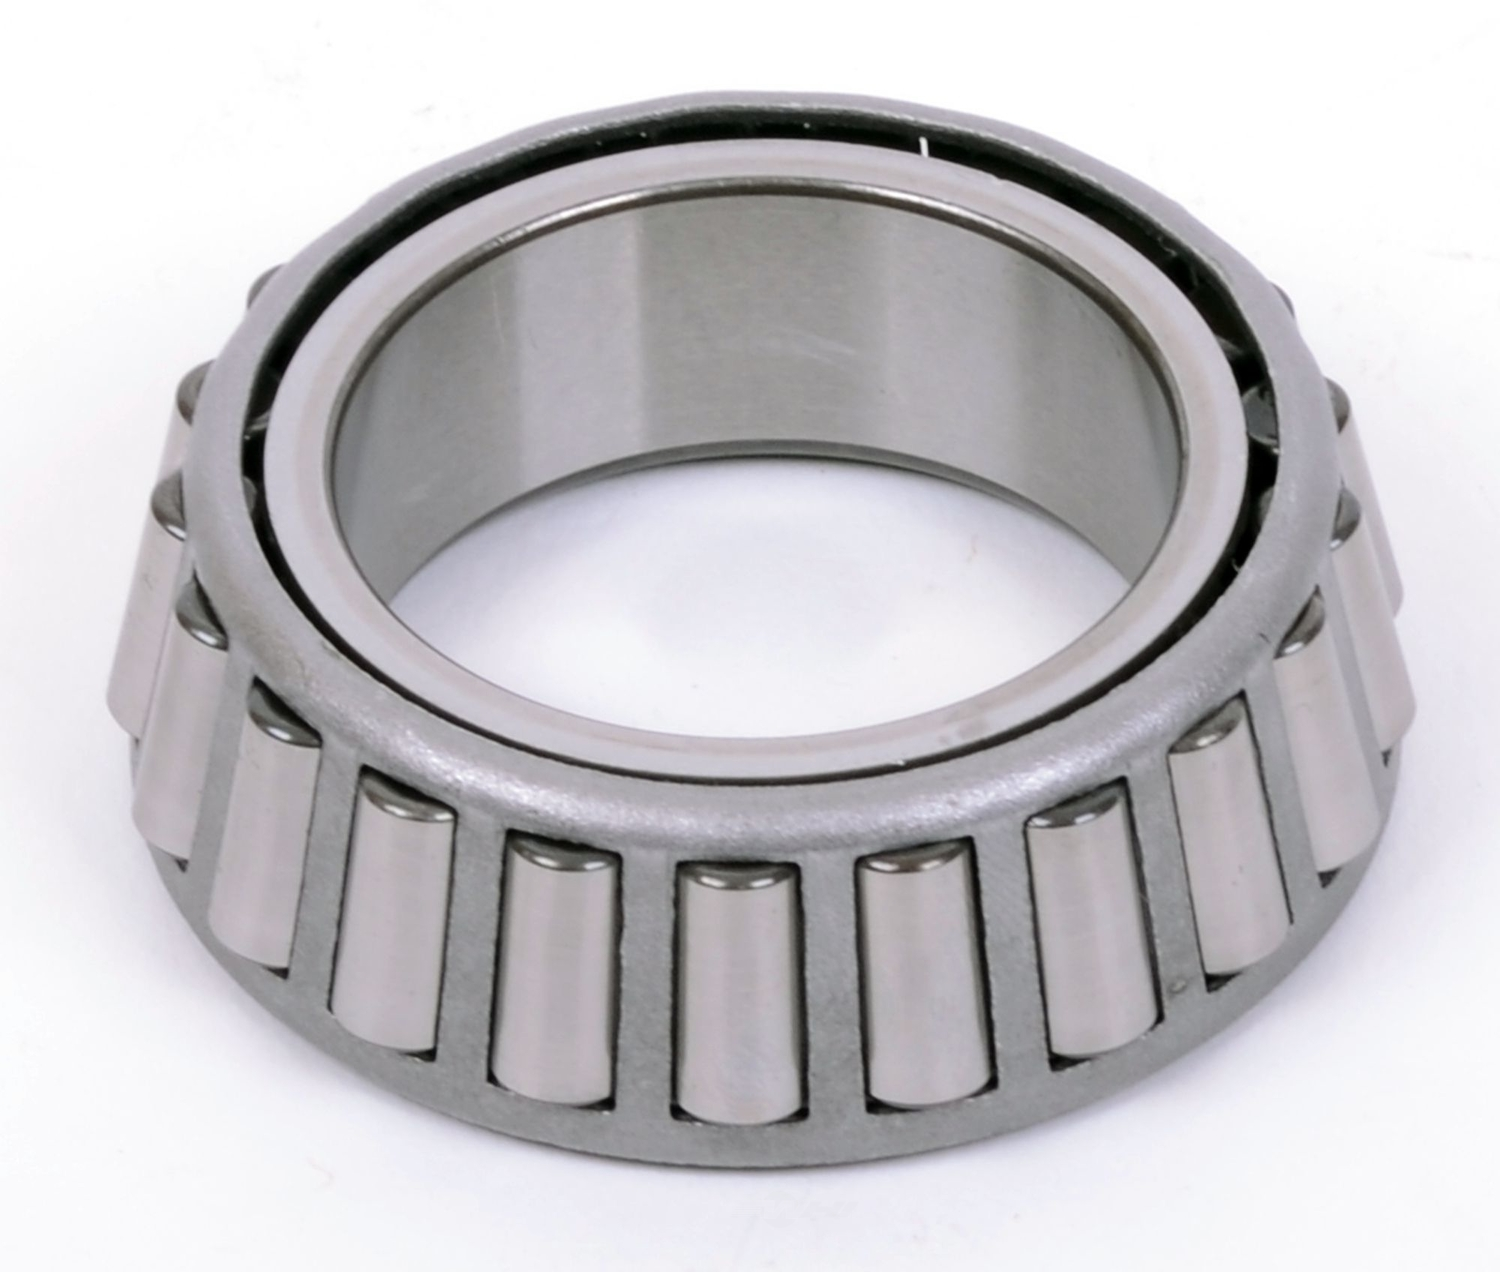 SKF (CHICAGO RAWHIDE) - Manual Trans Differential Bearing - SKF LM29749 VP